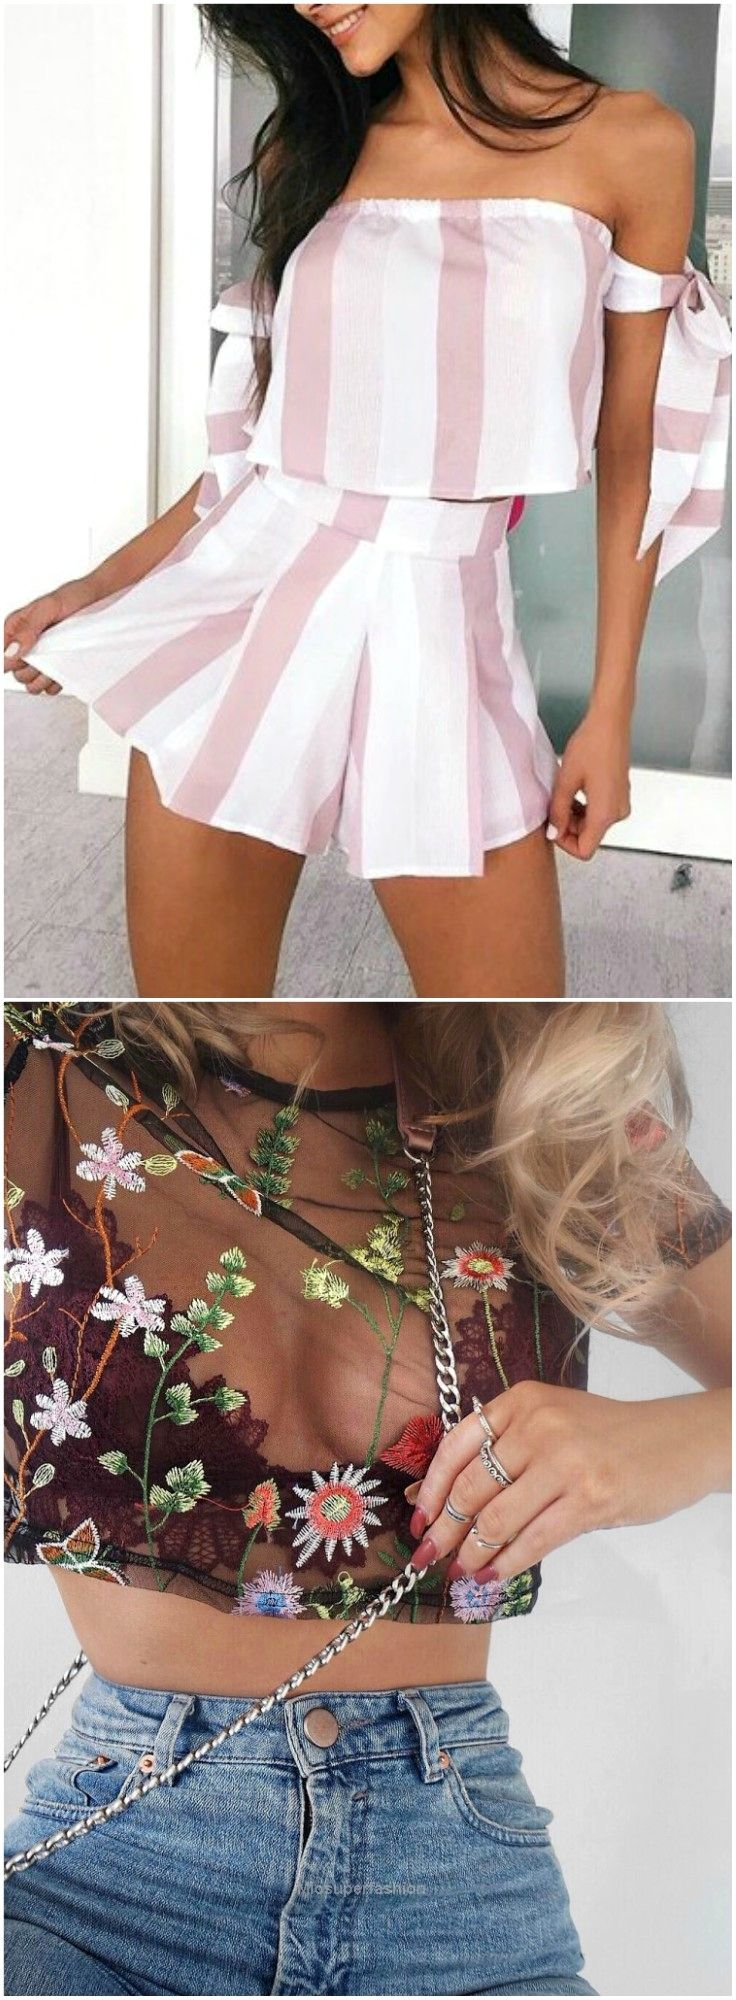 sunny season stylish tips 2017, summer high fashion advice 2017, simple summer fashion, shirts that keep you cool in hot temperature,summer women stylish clothing, sun shirts or dresses 2017, may outfits 2017, summer clothes 2017, women's summer dresses,